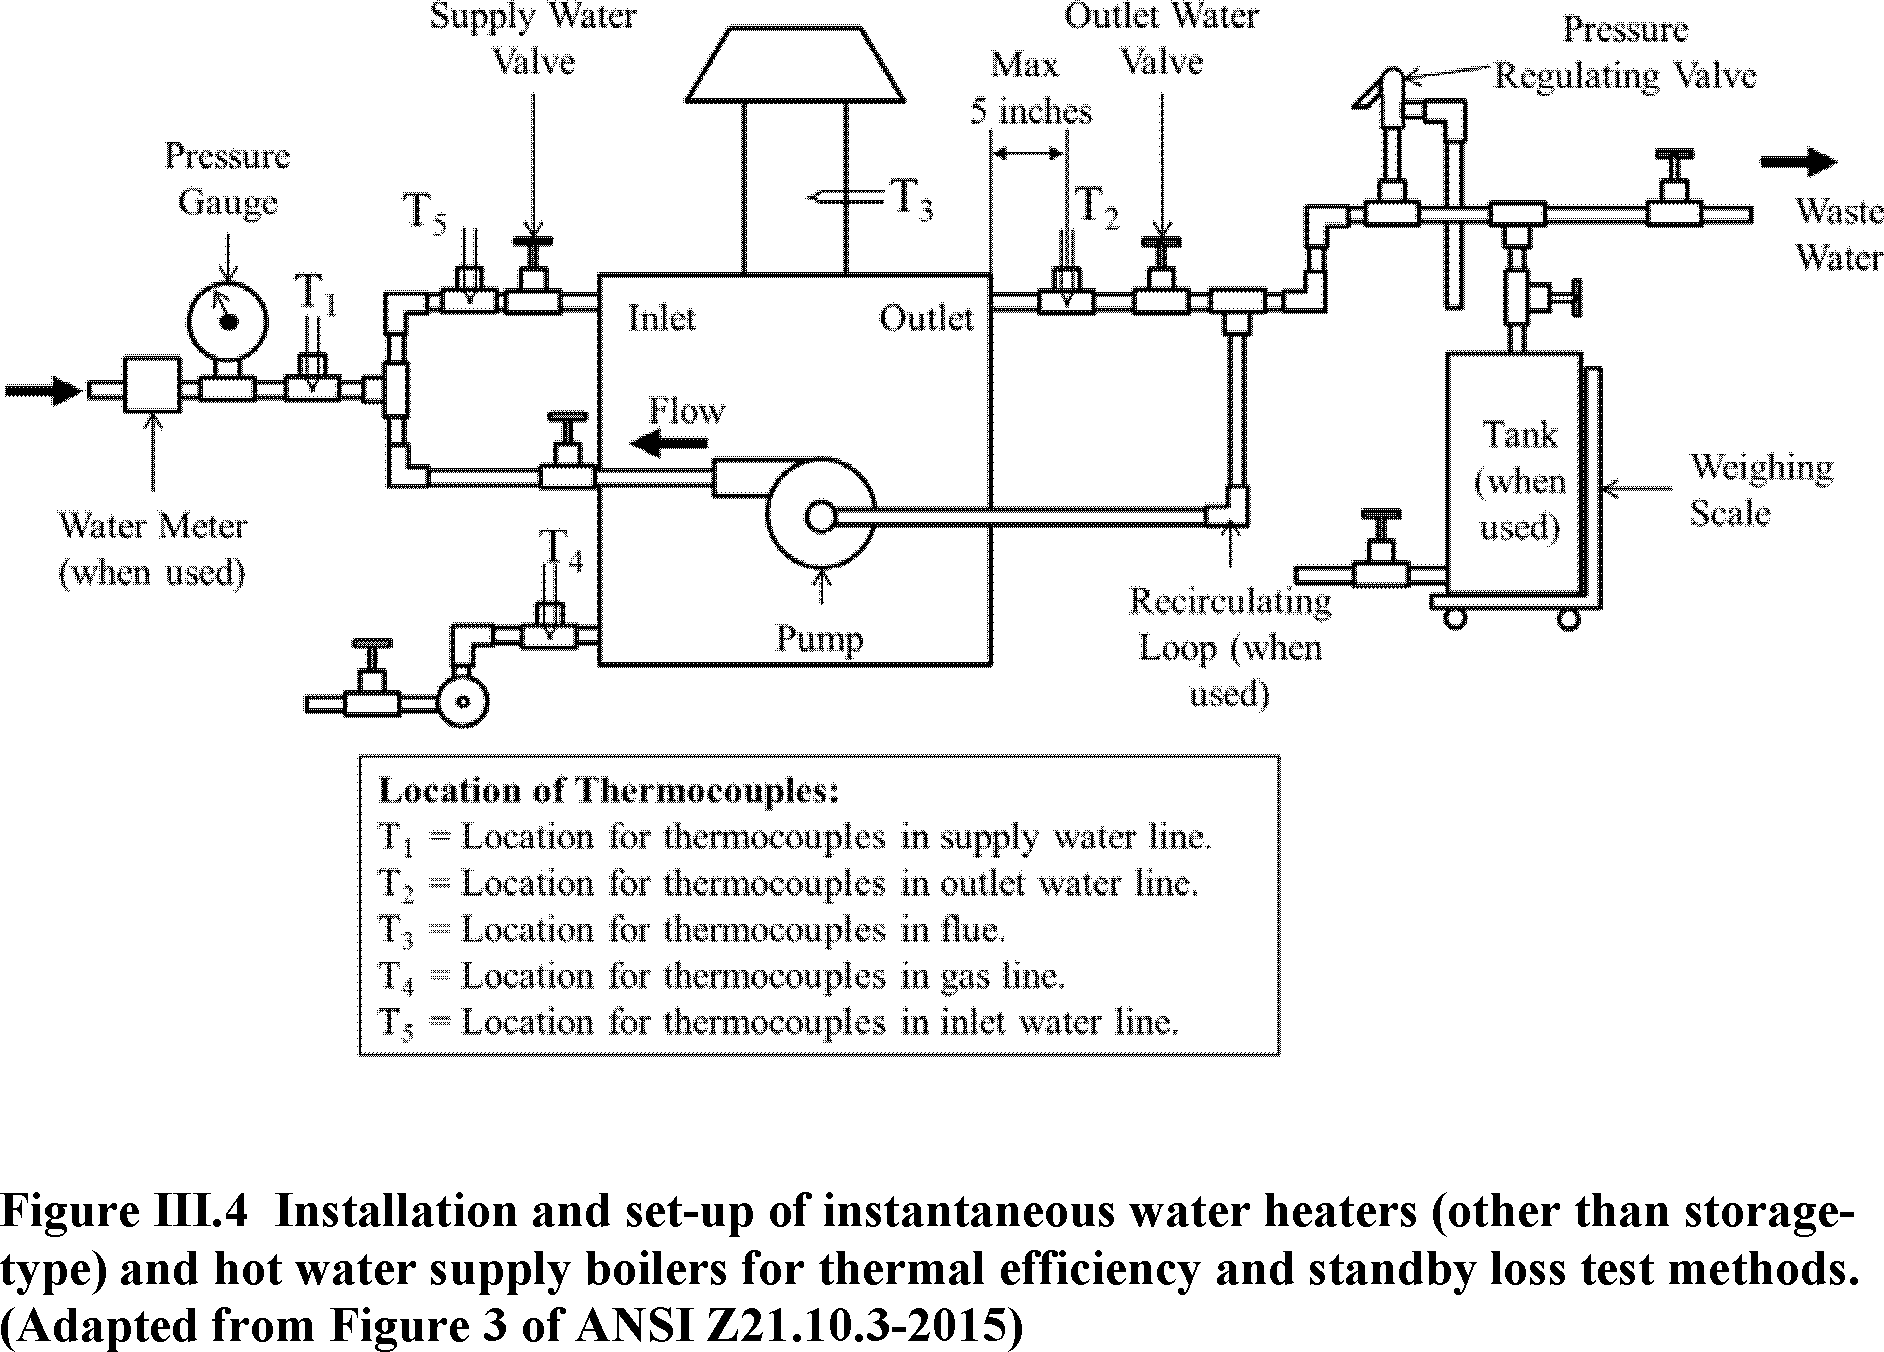 hight resolution of figure iii 4 and the proposed specifications for the placement of temperature sensors placement of water valves and placement of a recirculating loop